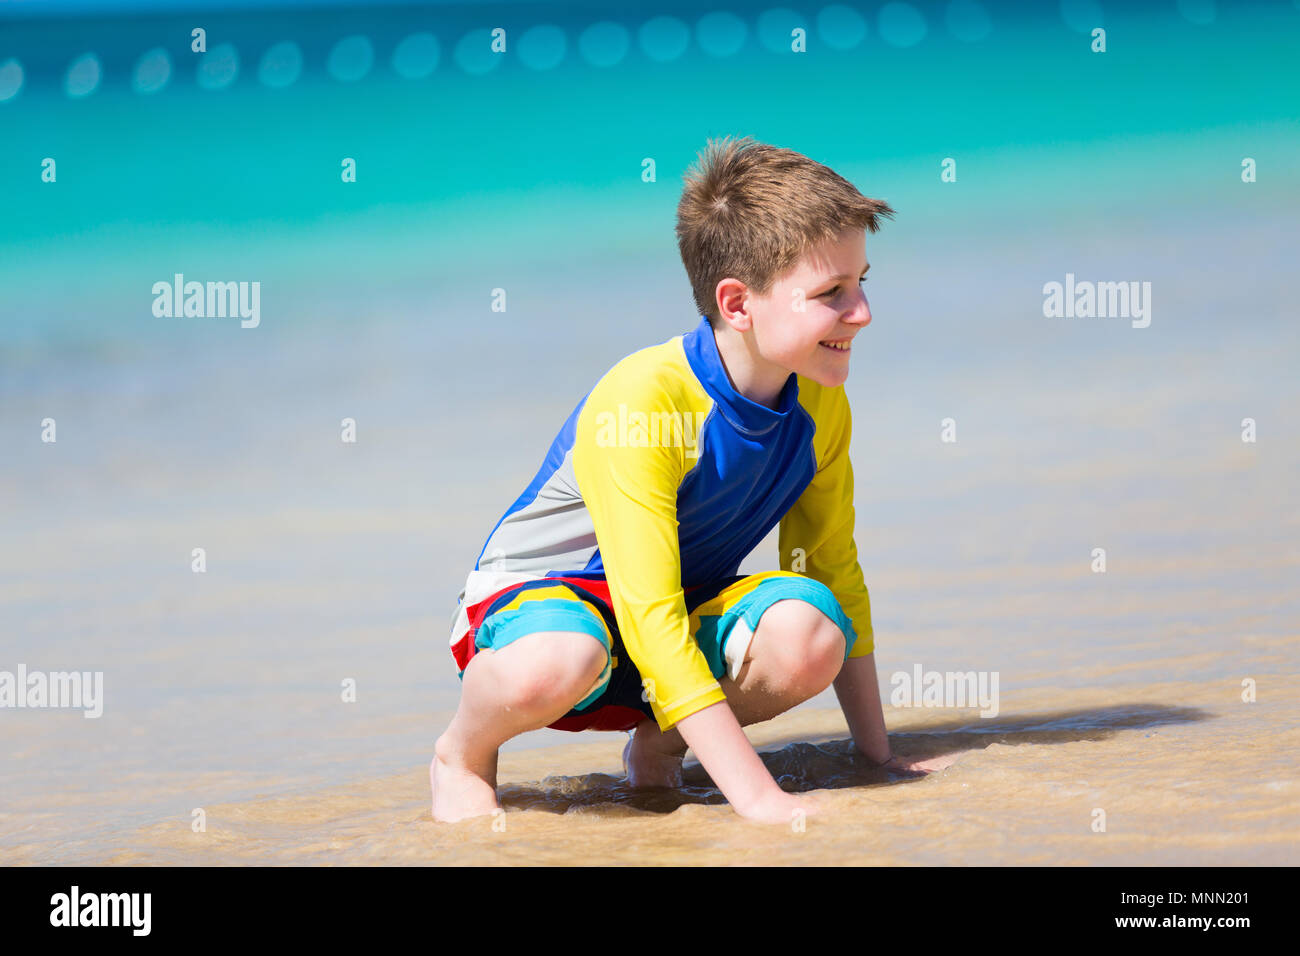 Handsome pre-teen age boy playing with sand at tropical beach on summer vacation - Stock Image